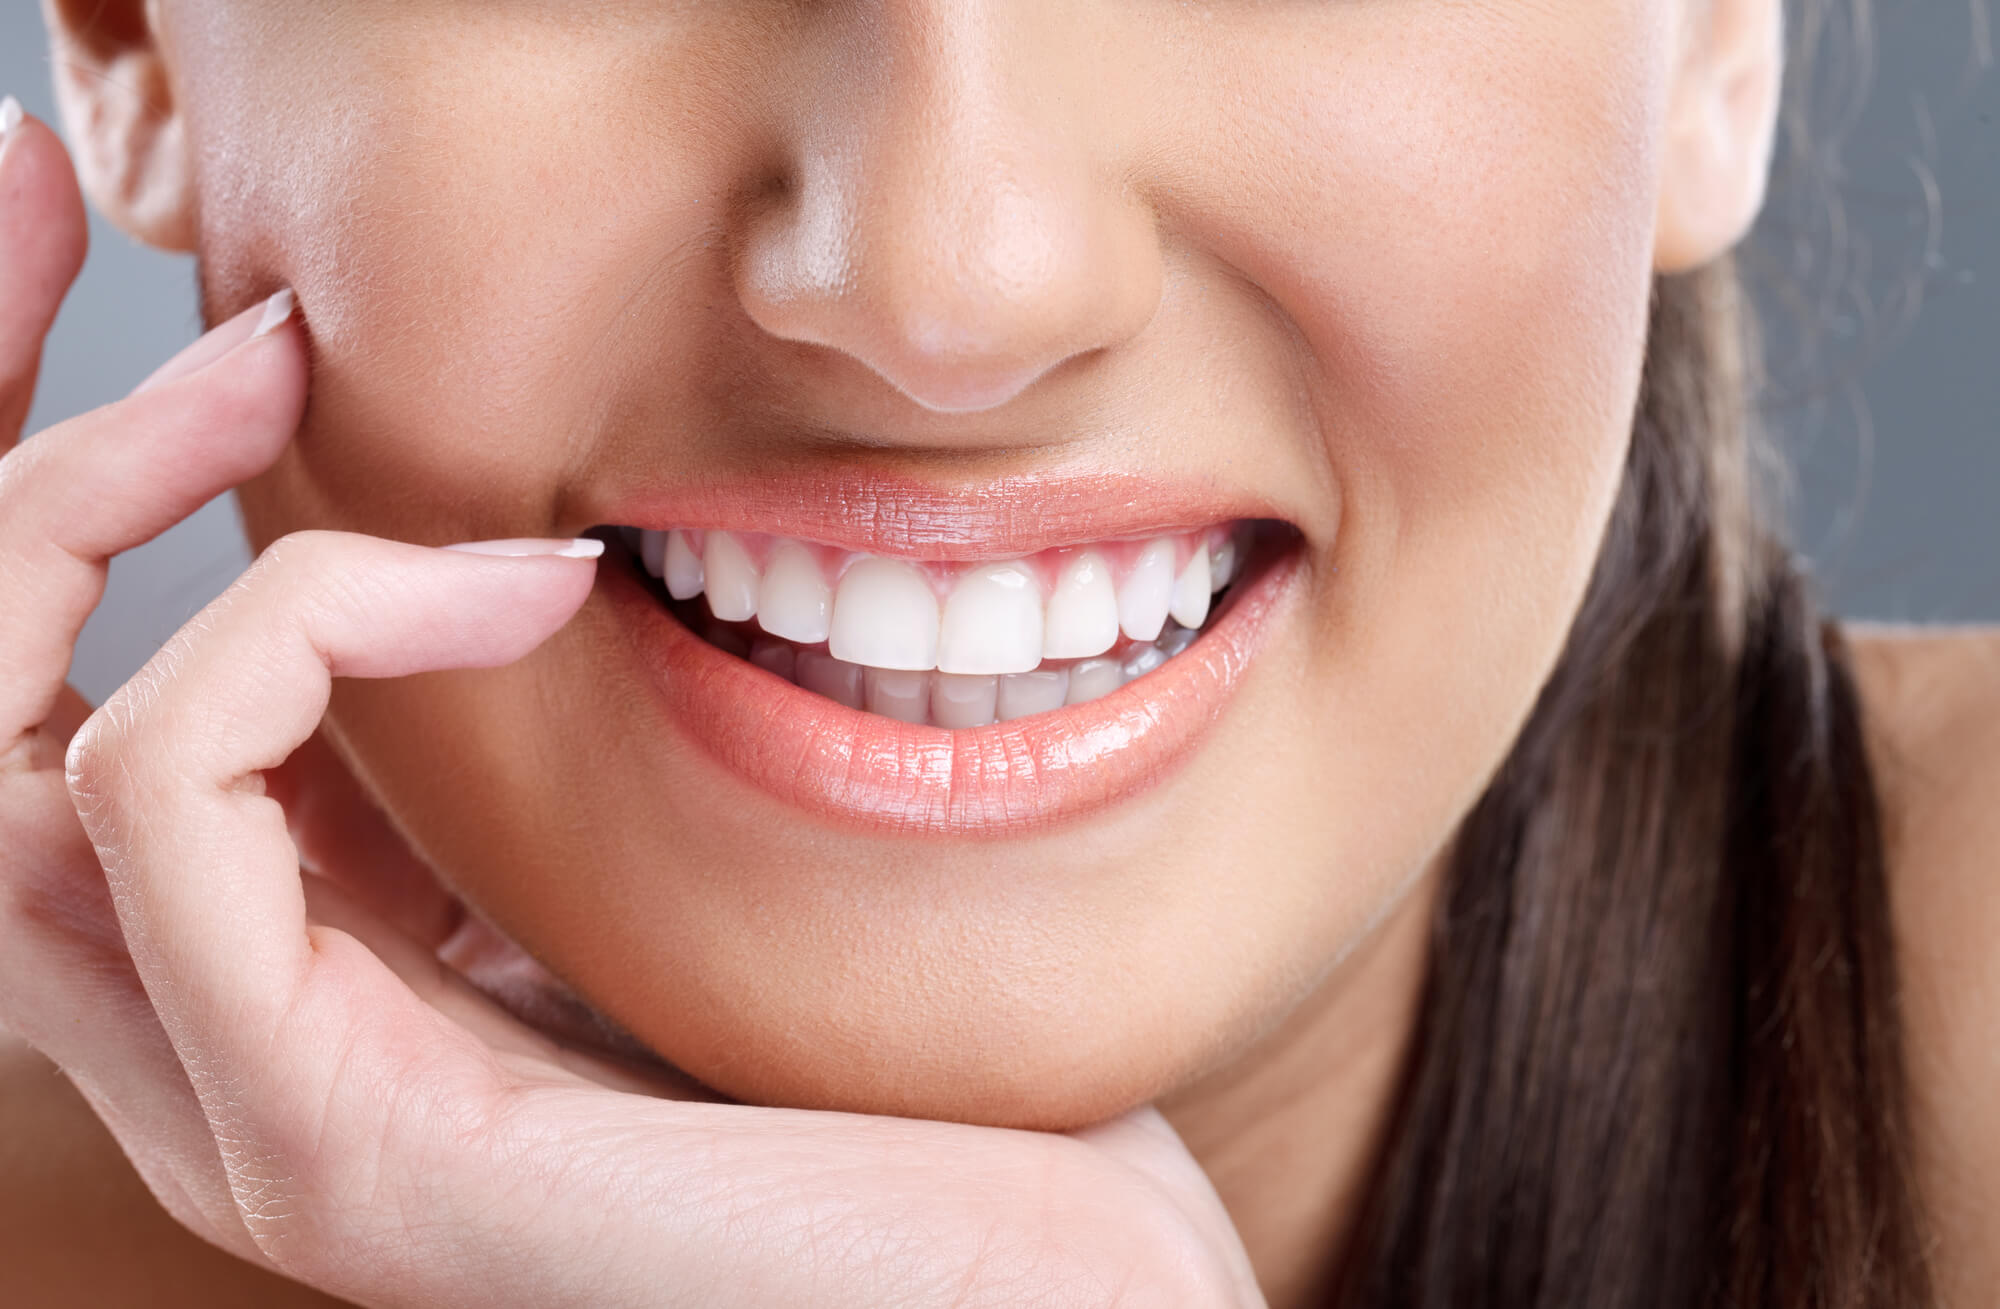 Where can I get Teeth Whitening Coral Gables?